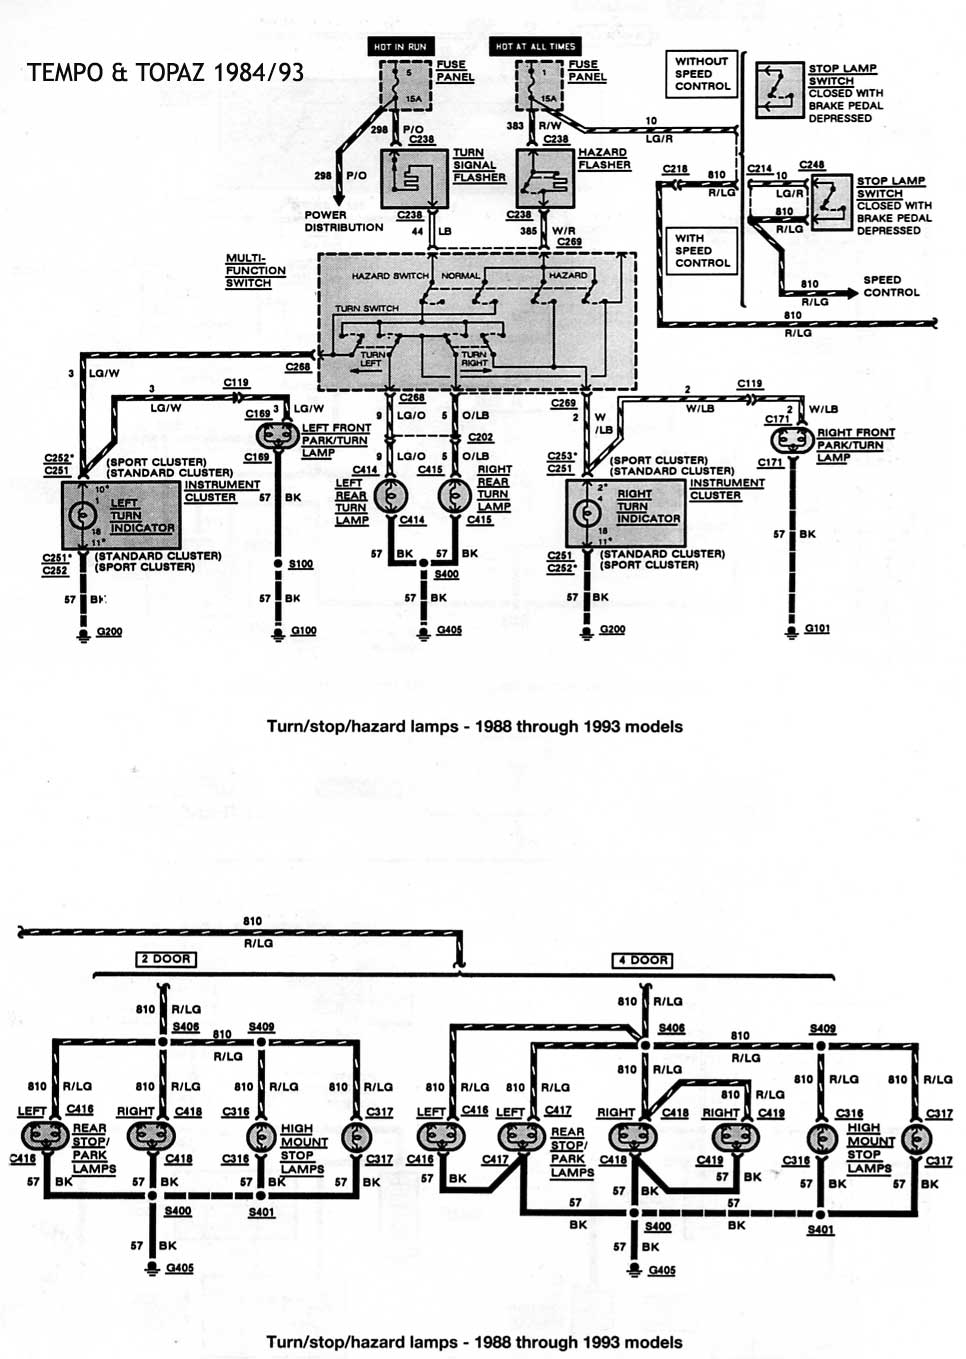 93 Ford Tempo Wiring Diagram | Wiring Diagram  Ford Tempo Radio Wiring Diagram on 1993 nissan altima radio wiring diagram, 1993 lincoln town car radio wiring diagram, 2005 ford f250 radio wiring diagram,